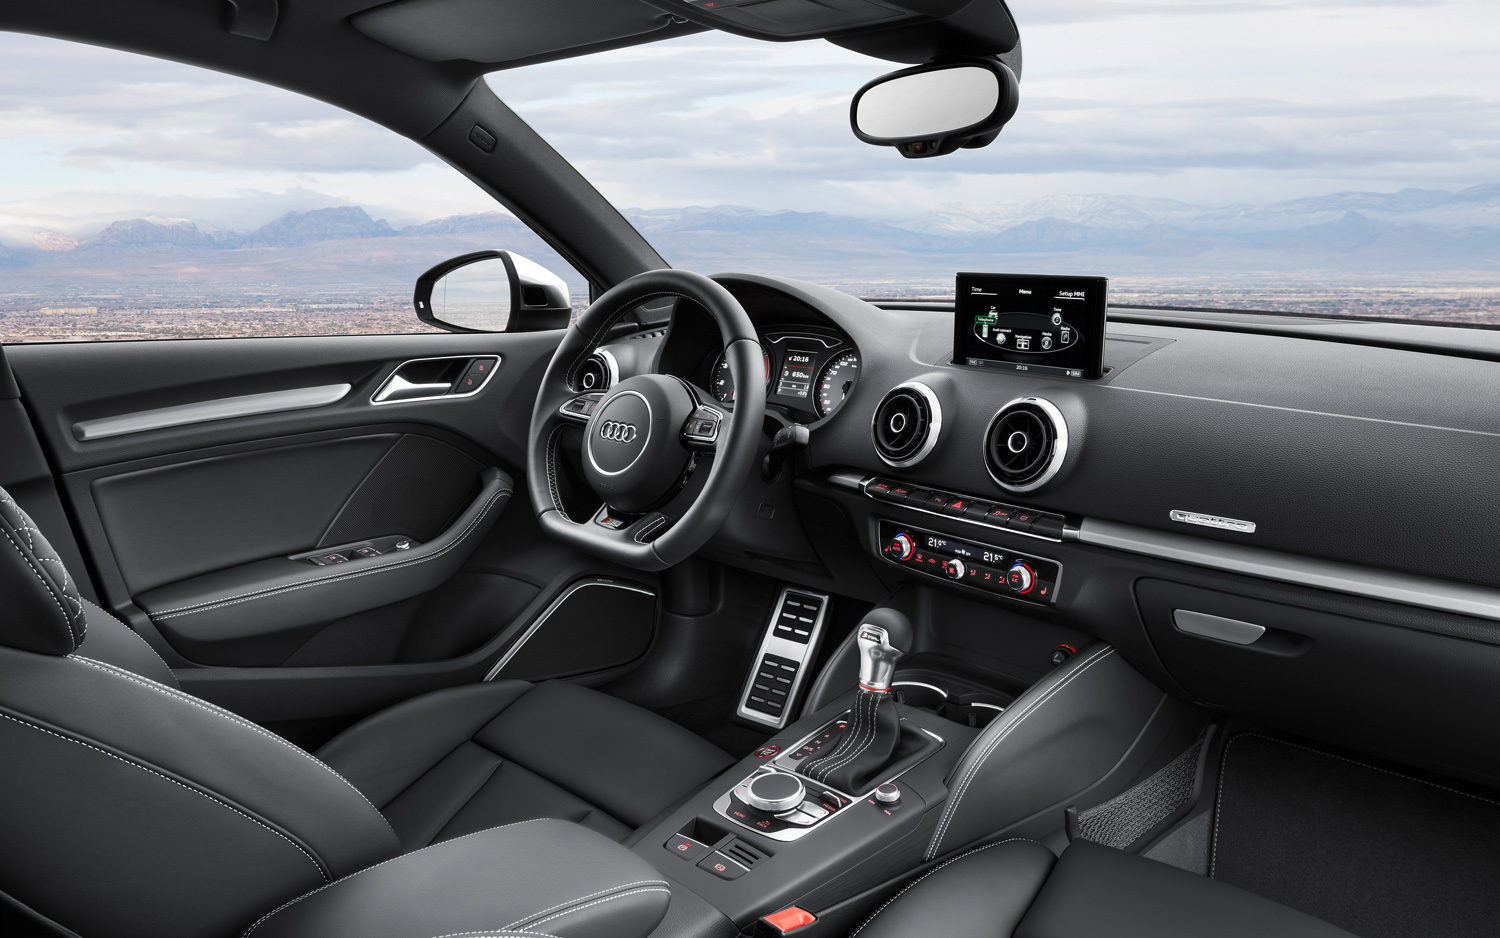 2015 Audi S3 Sedan Front Interior (View 10 of 10)